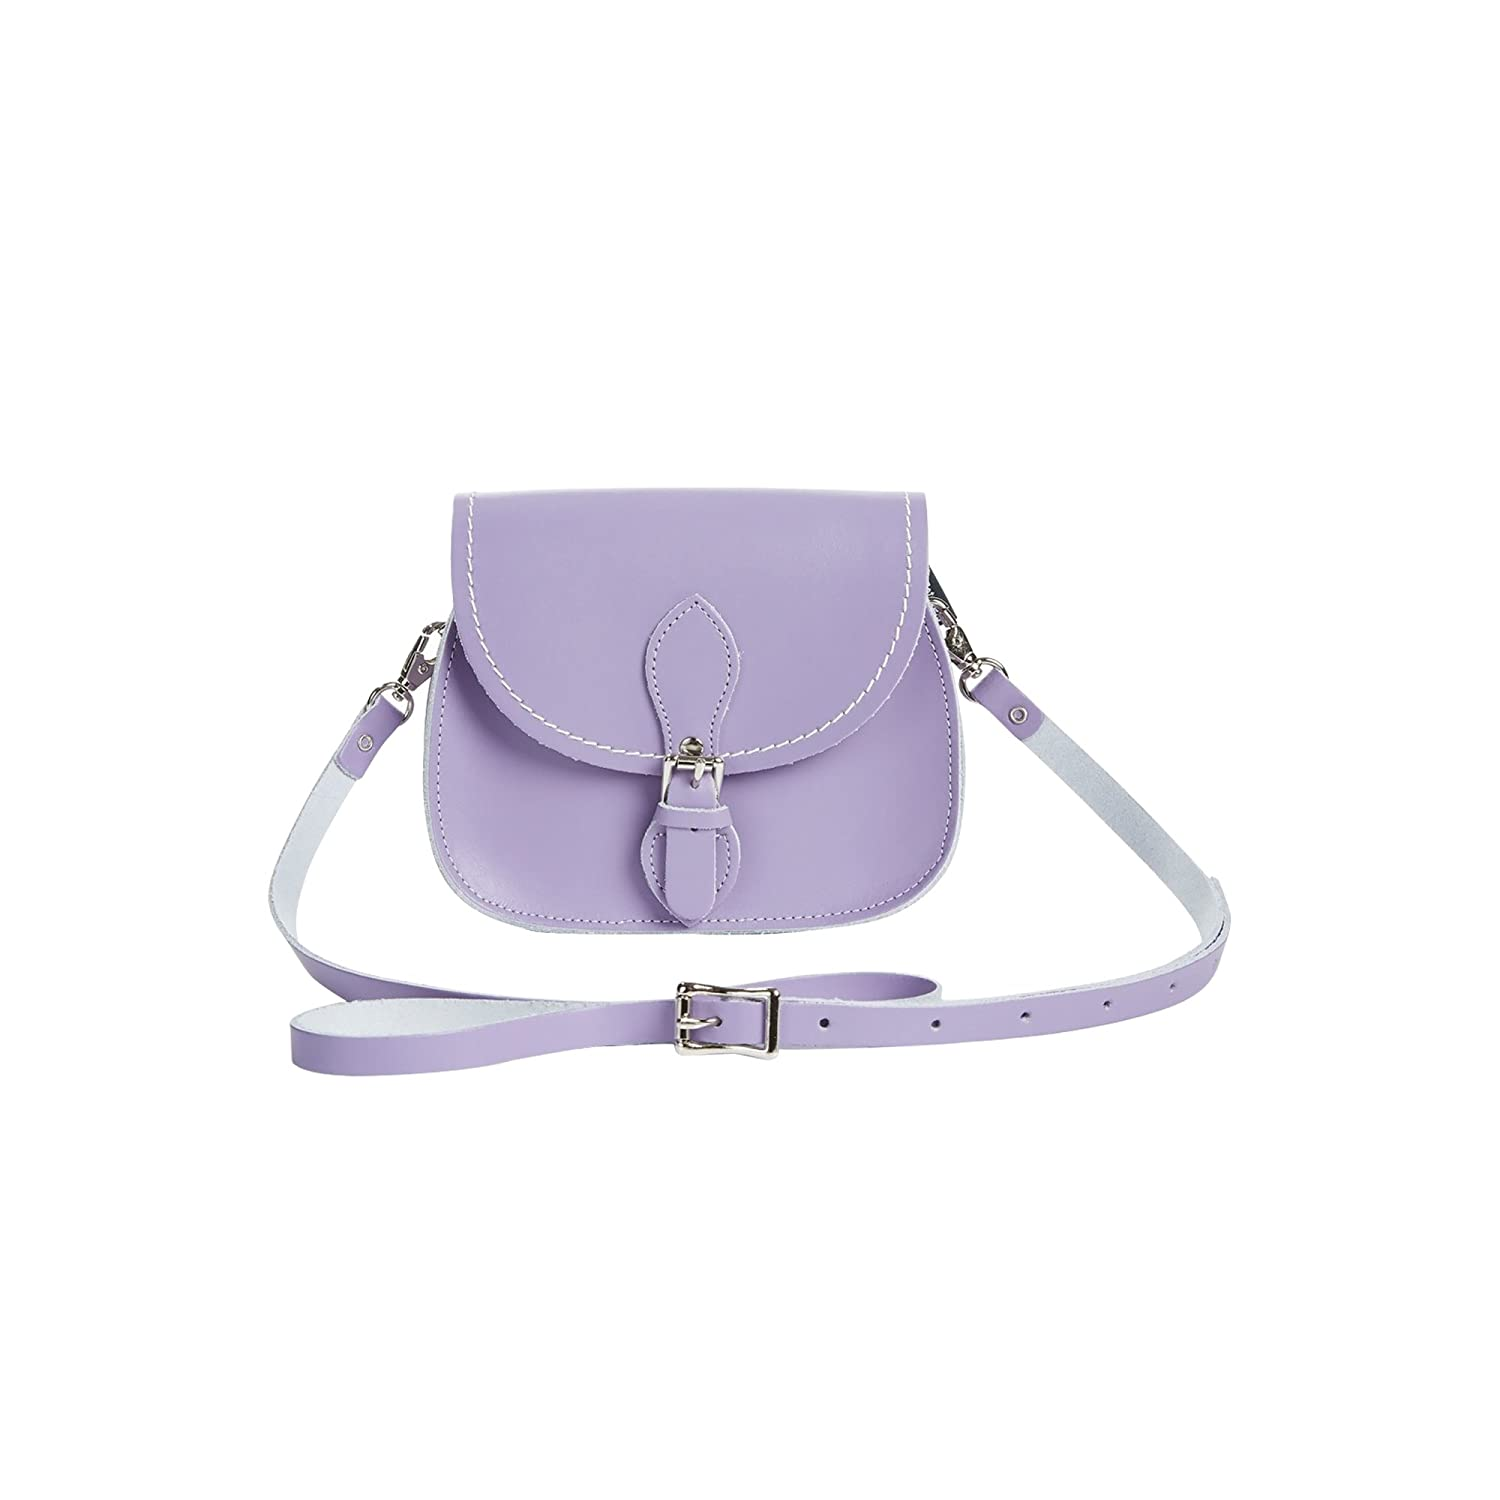 ff827f4828ca0 Amazon.com: Zatchels Womens Handcrafted Pastel Leather Micro Saddle Bag  (British Made) (One Size) (Baby Blue): Clothing